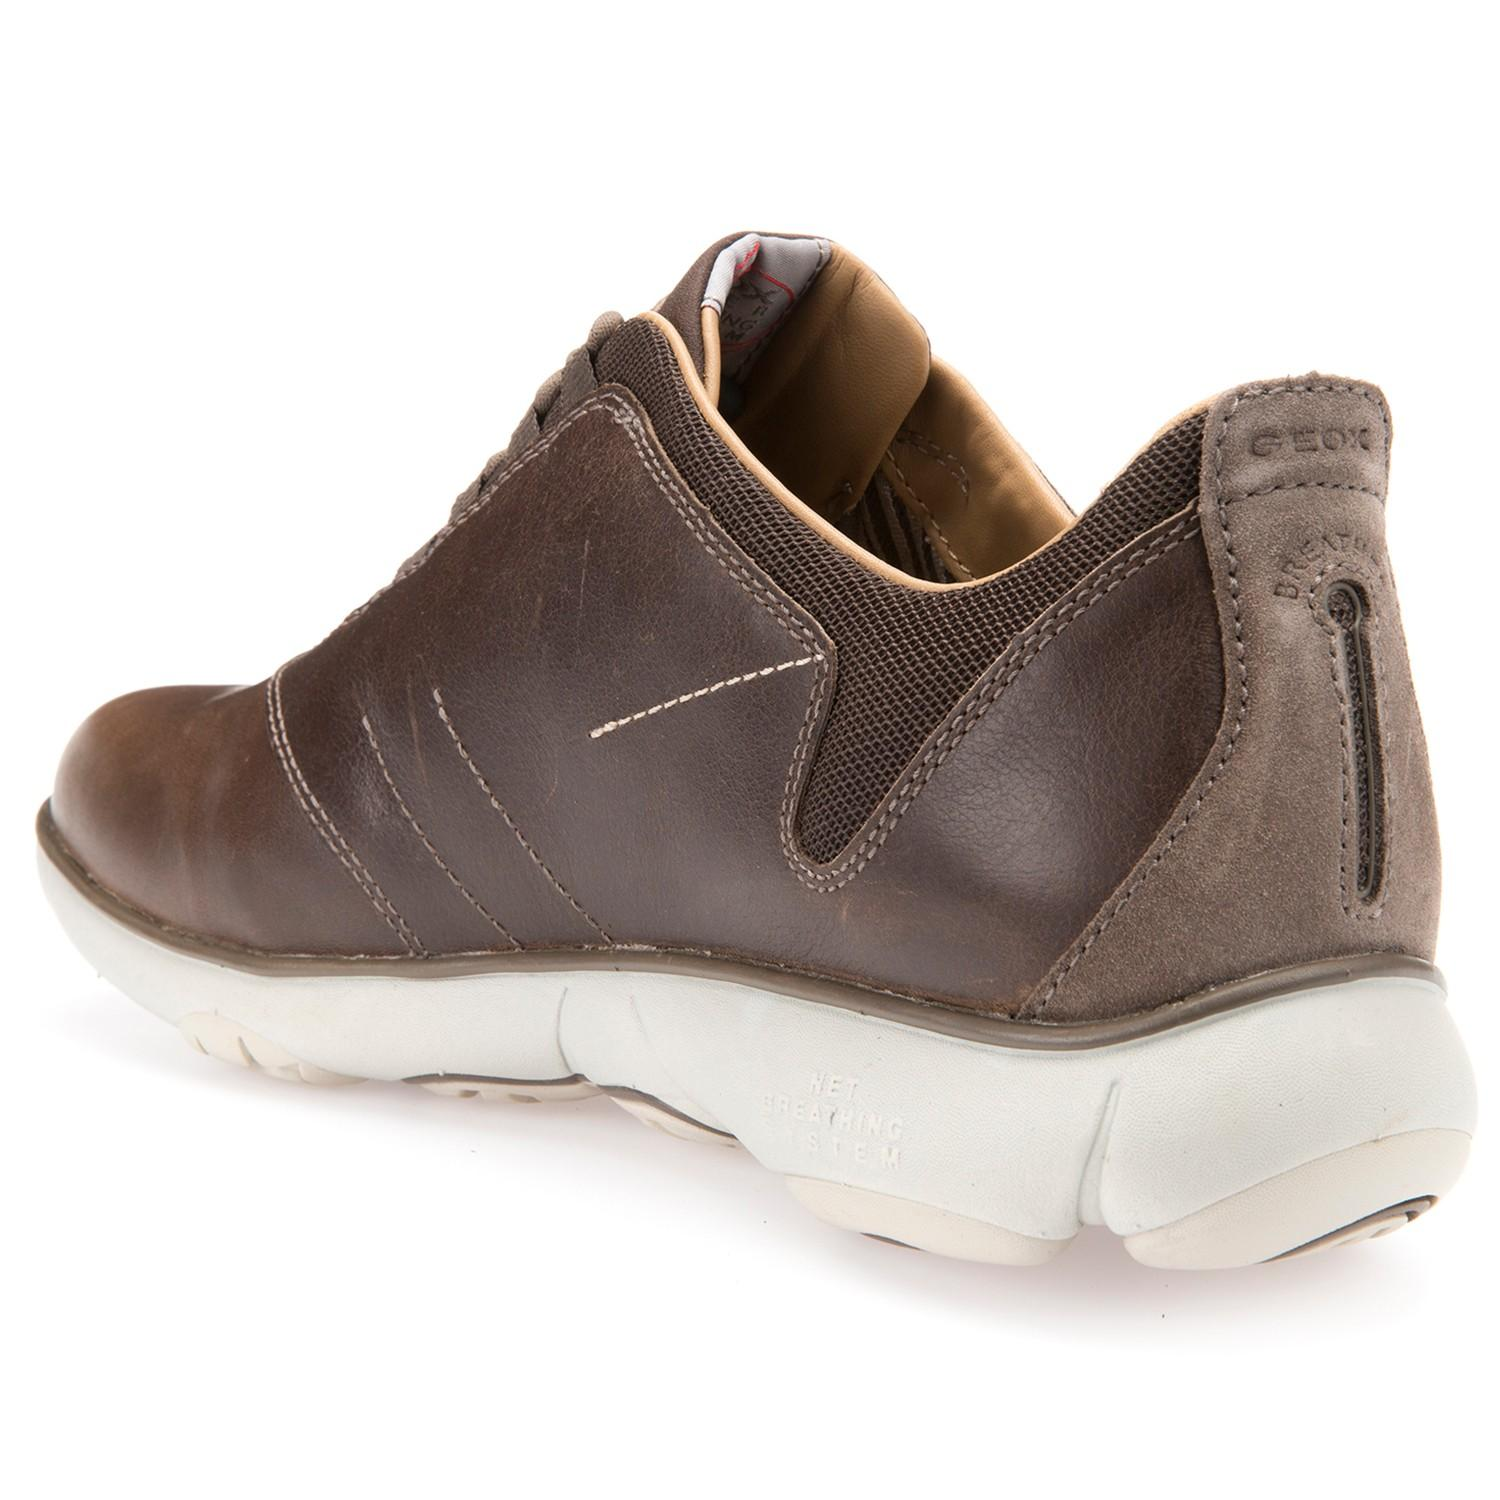 Geox Leather Nebula 3d Breathing Trainers in Brown for Men